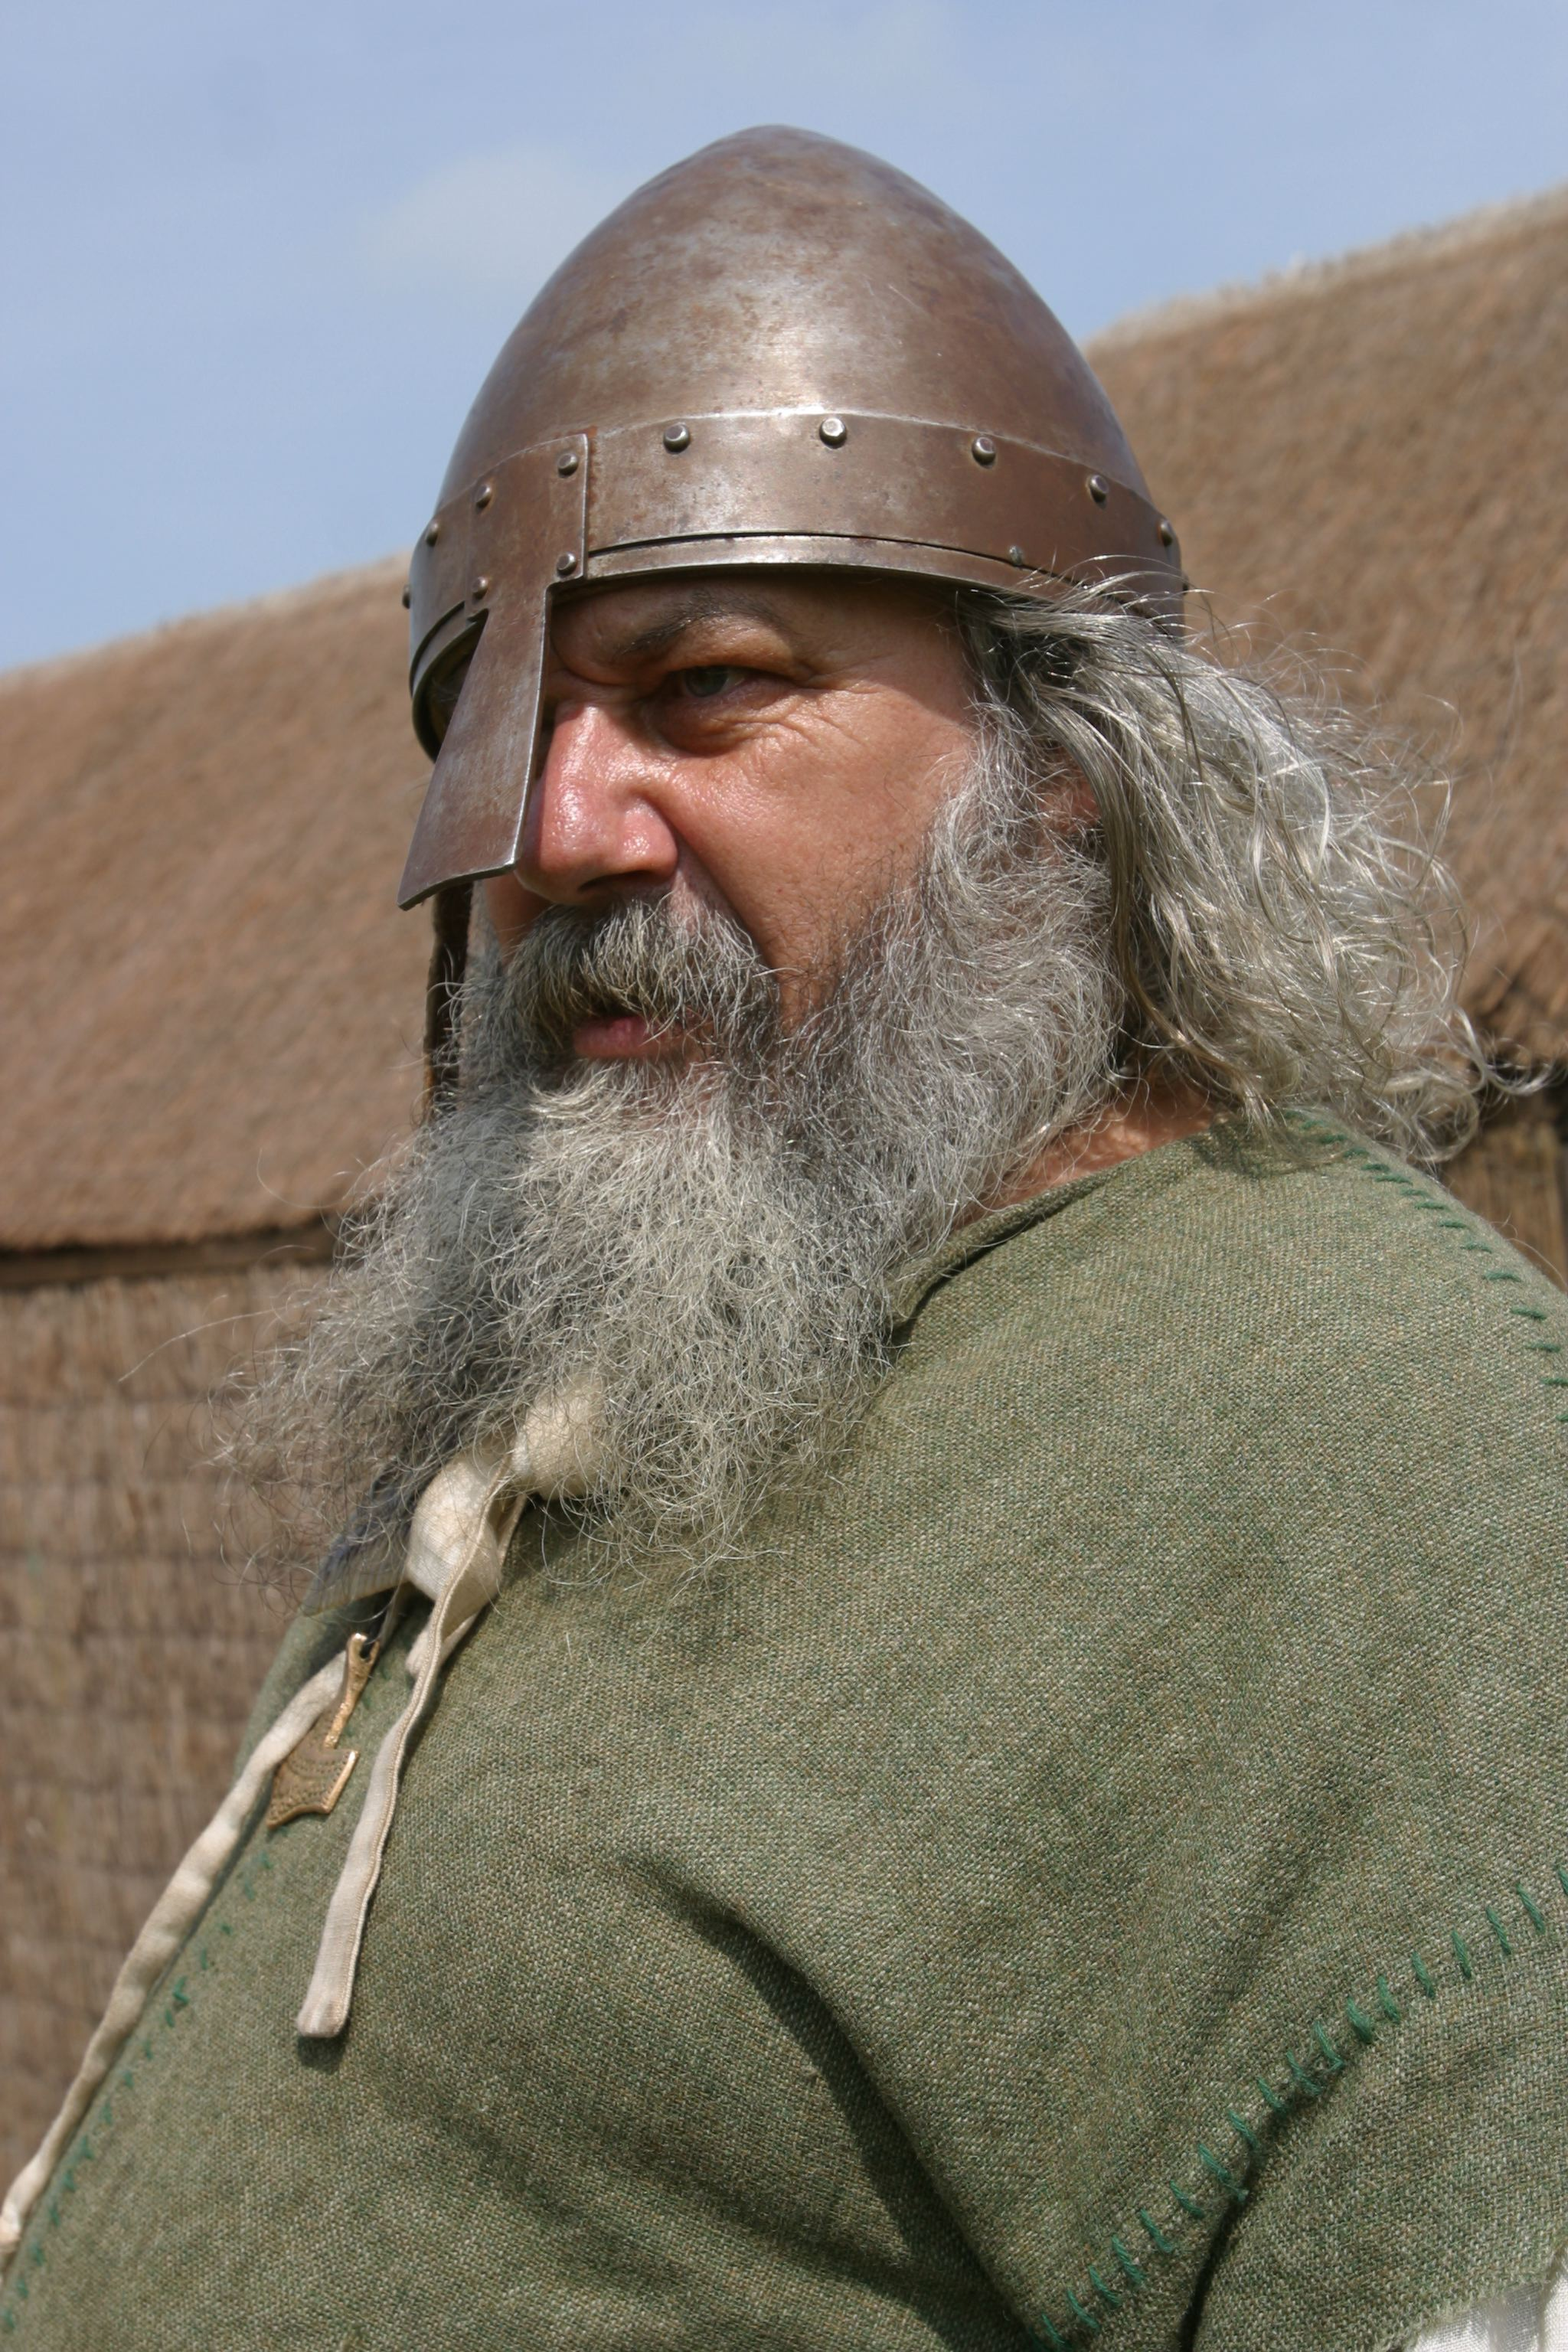 Close up of Viking warrior in helmet. Picture by John Doherty